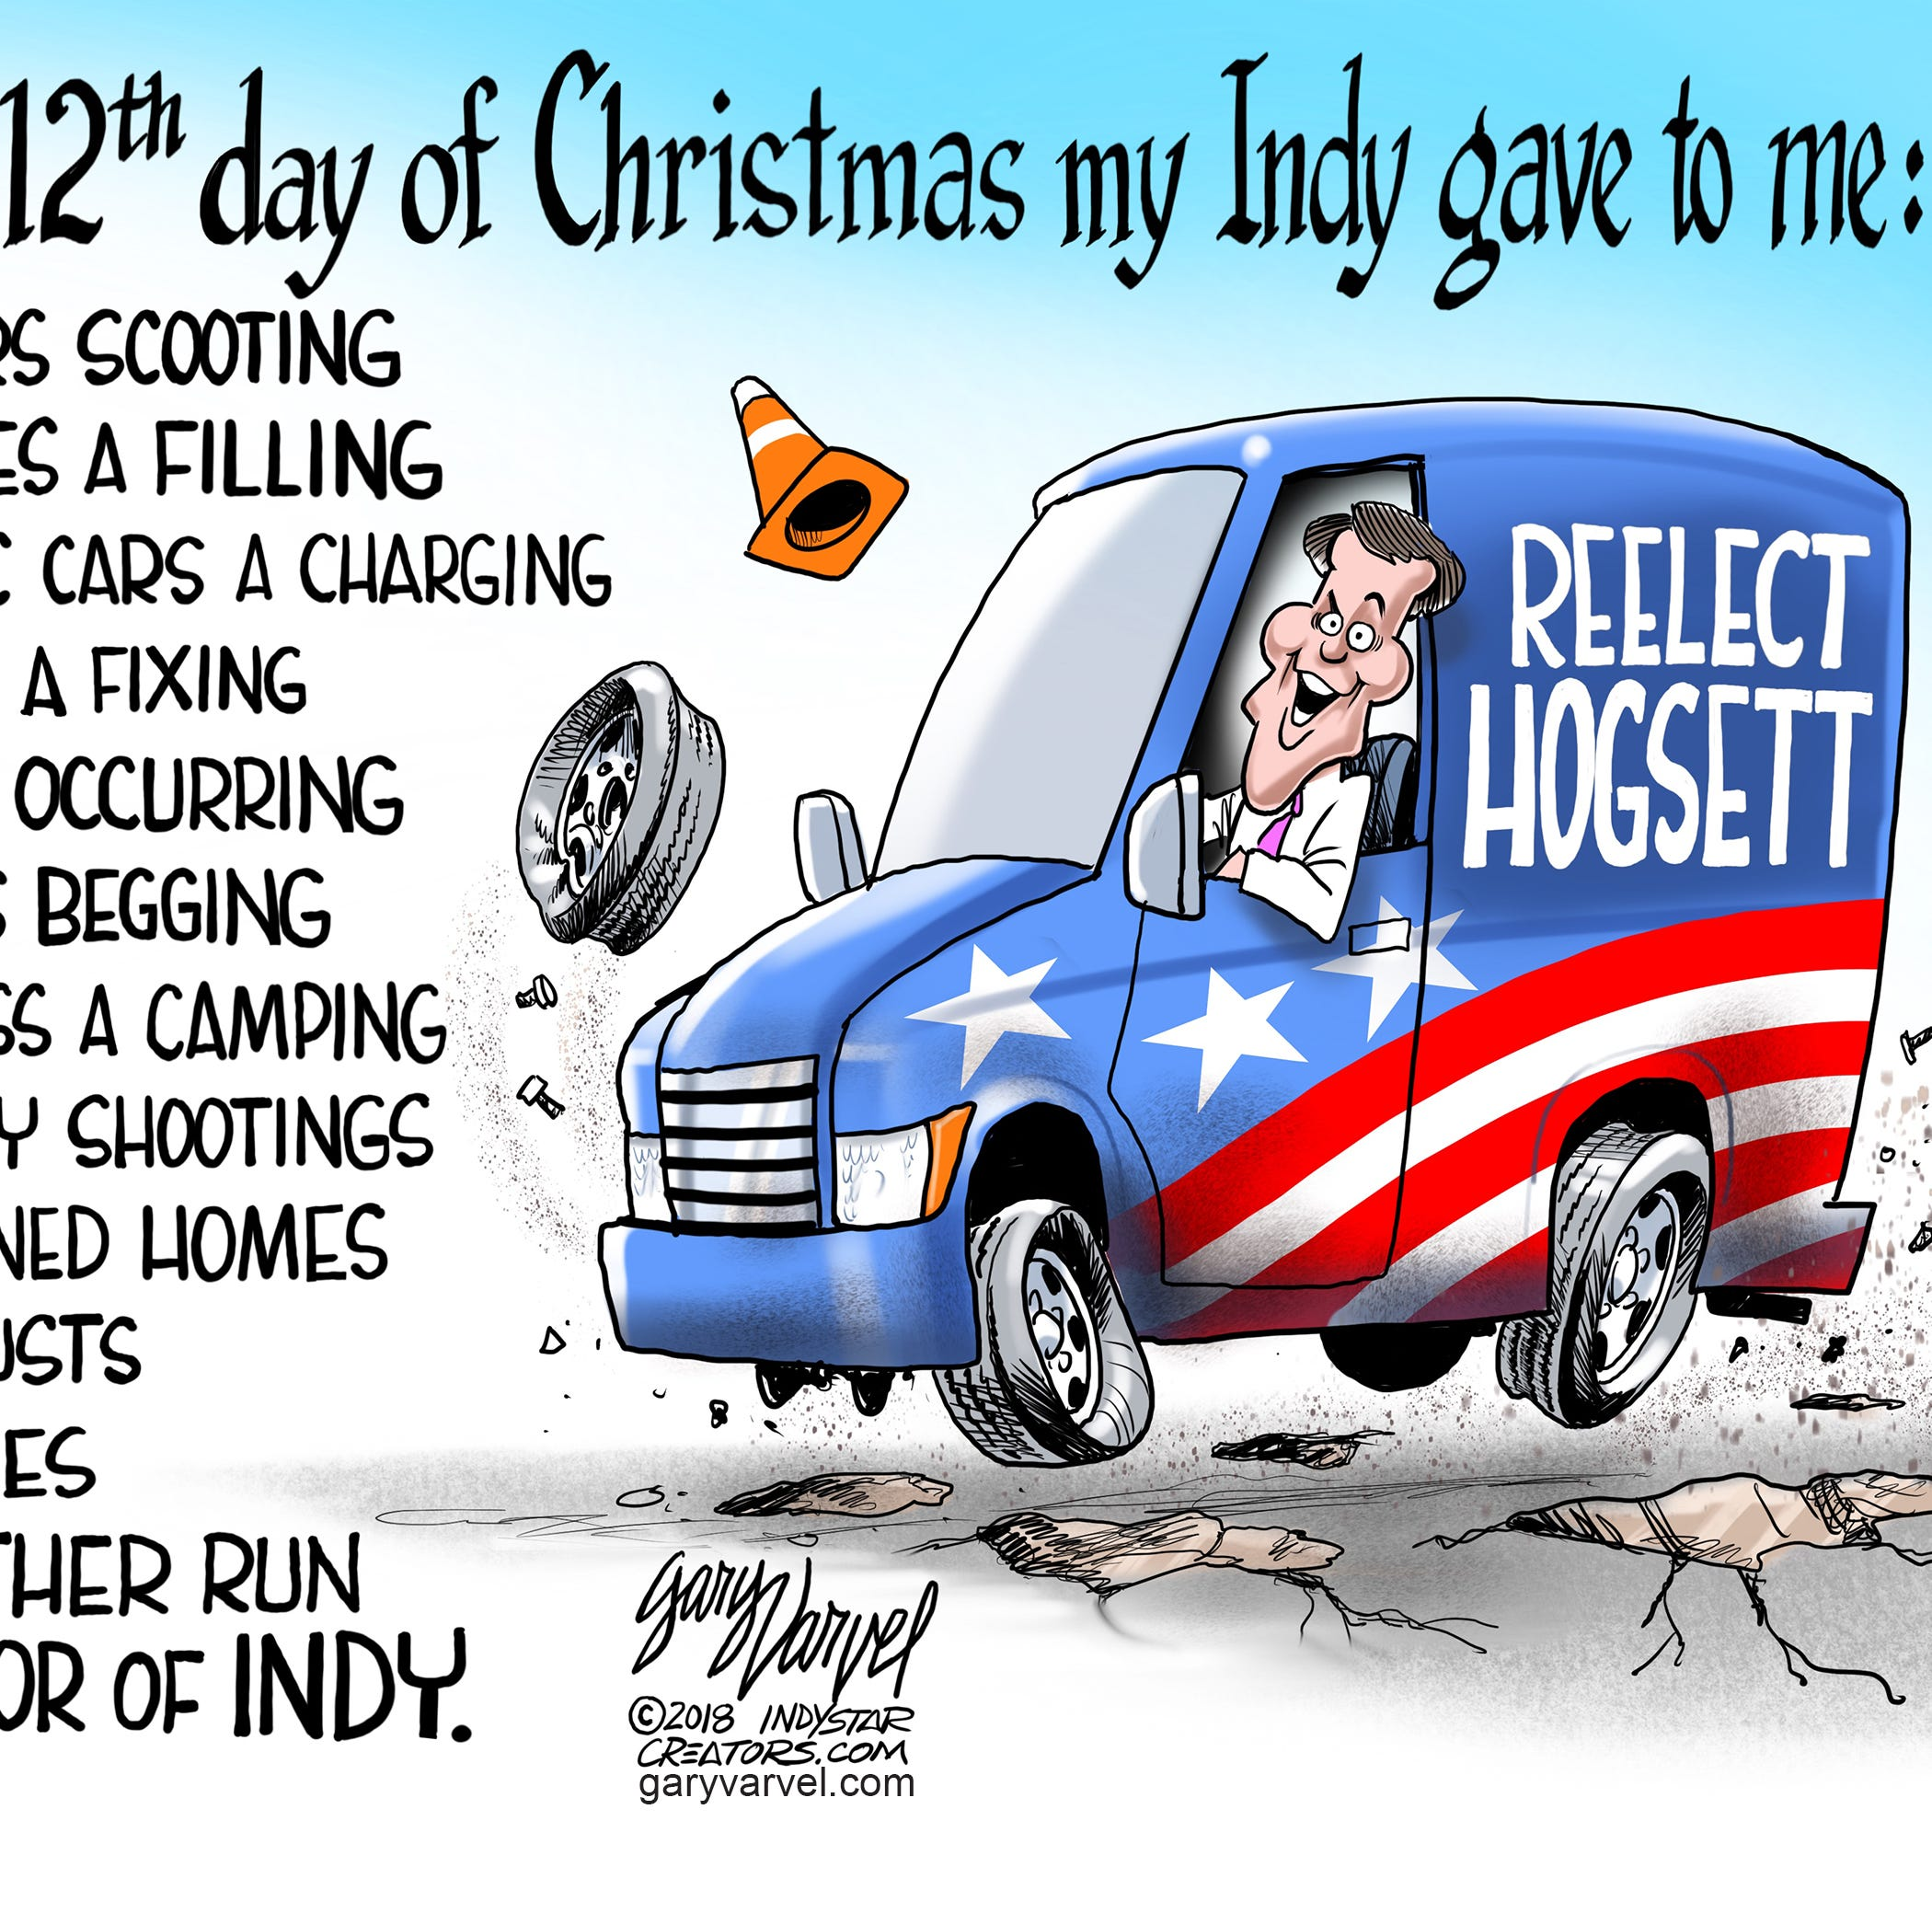 Cartoonist Gary Varvel: Mayor Hogsett's 12 days of Christmas